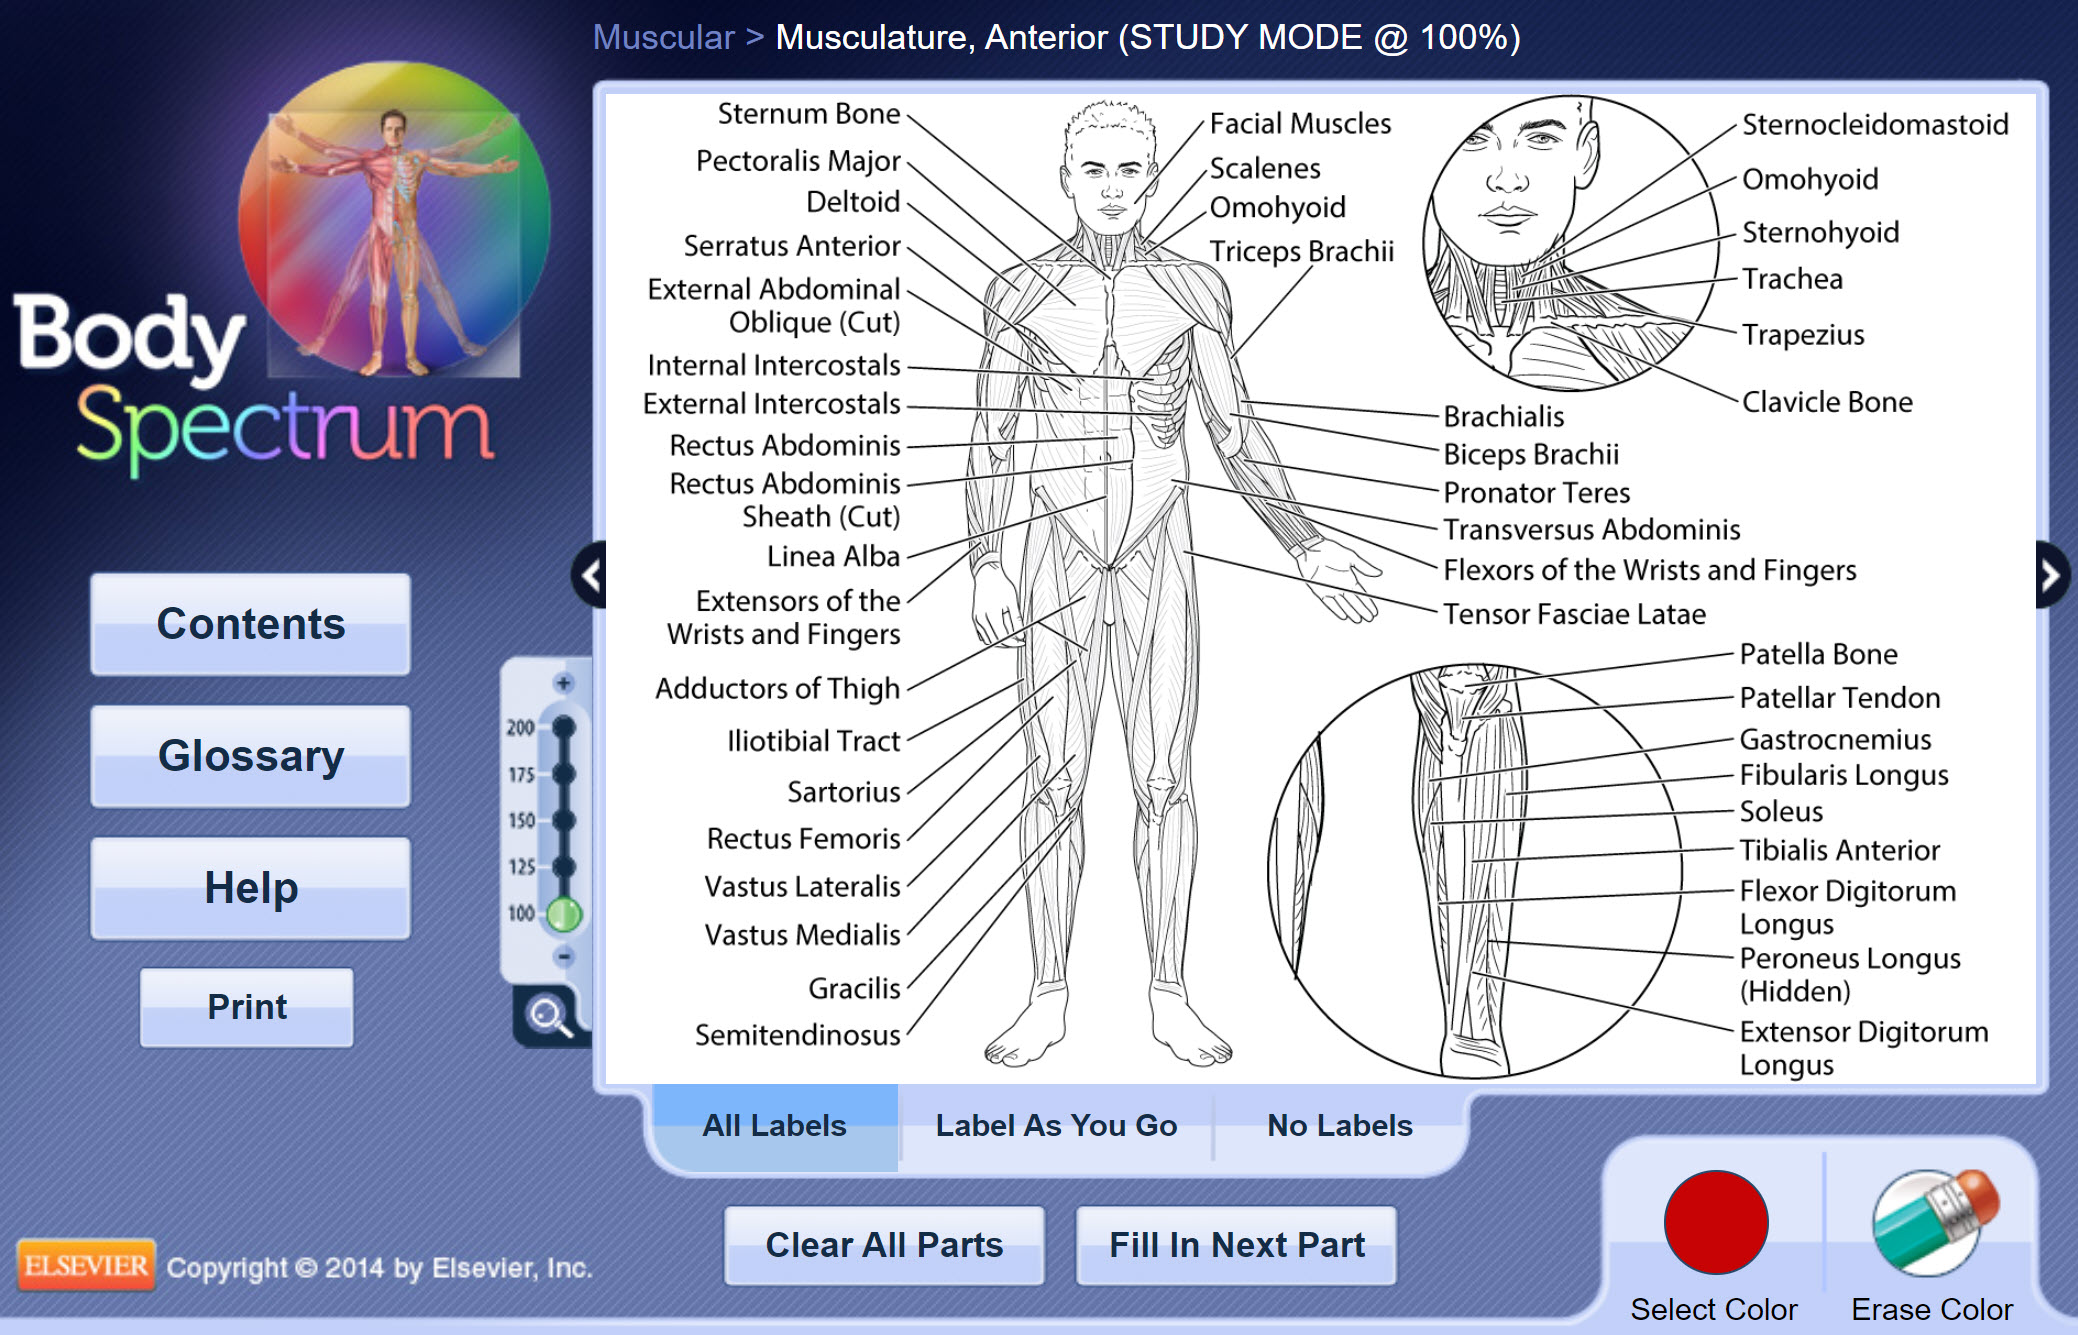 anterior musculature, with all labels